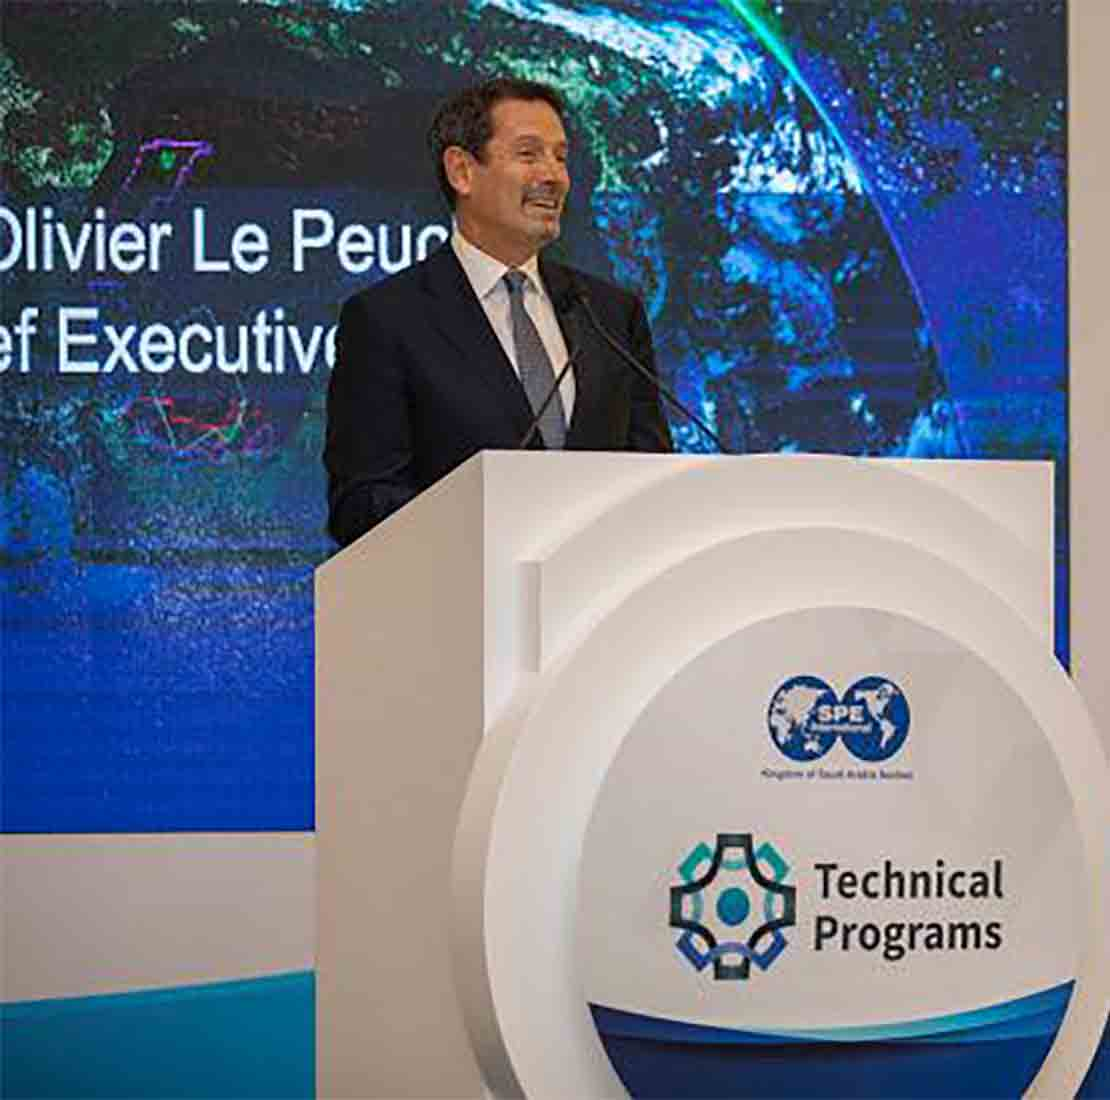 Schlumberger CEO, Olivier Le Peuch, speaks at the SPE event in the Middle East